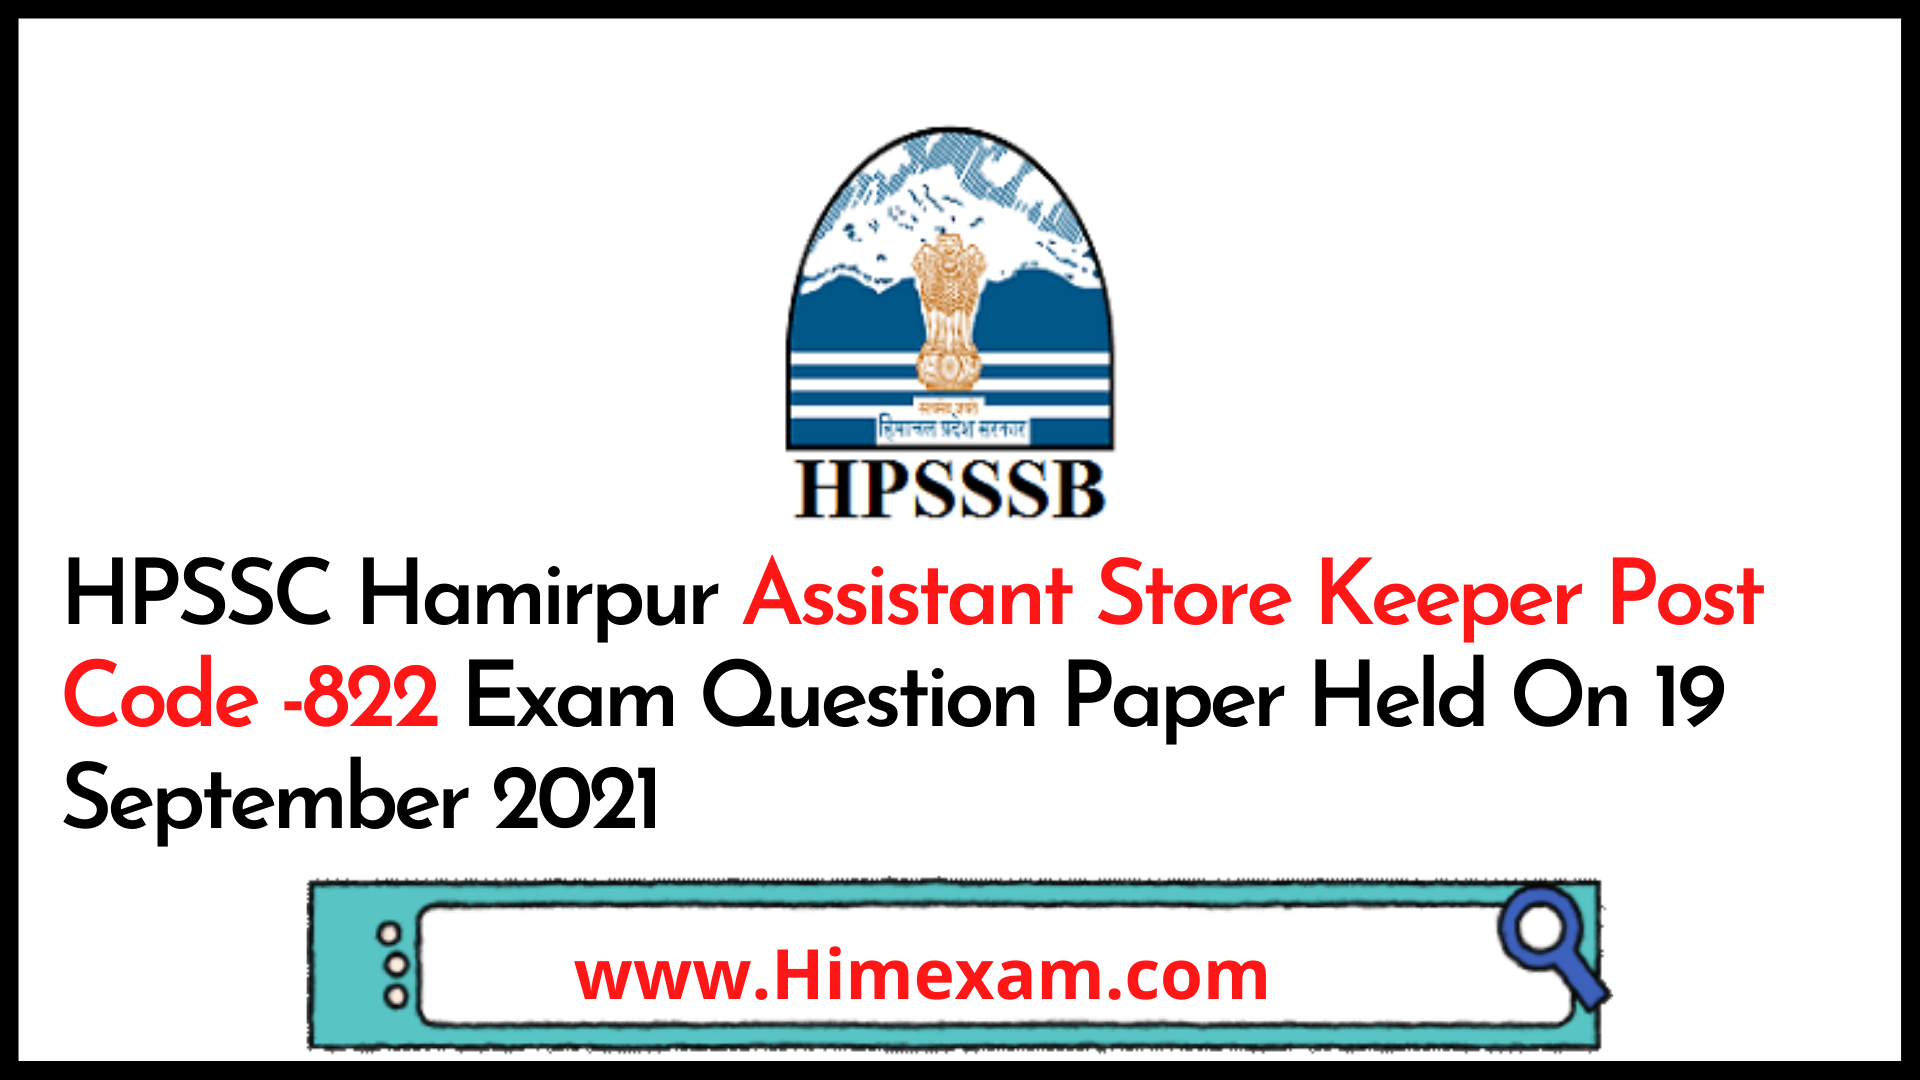 HPSSC Hamirpur Assistant Store Keeper Post Code -822 Exam Question Paper Held On 19 September 2021